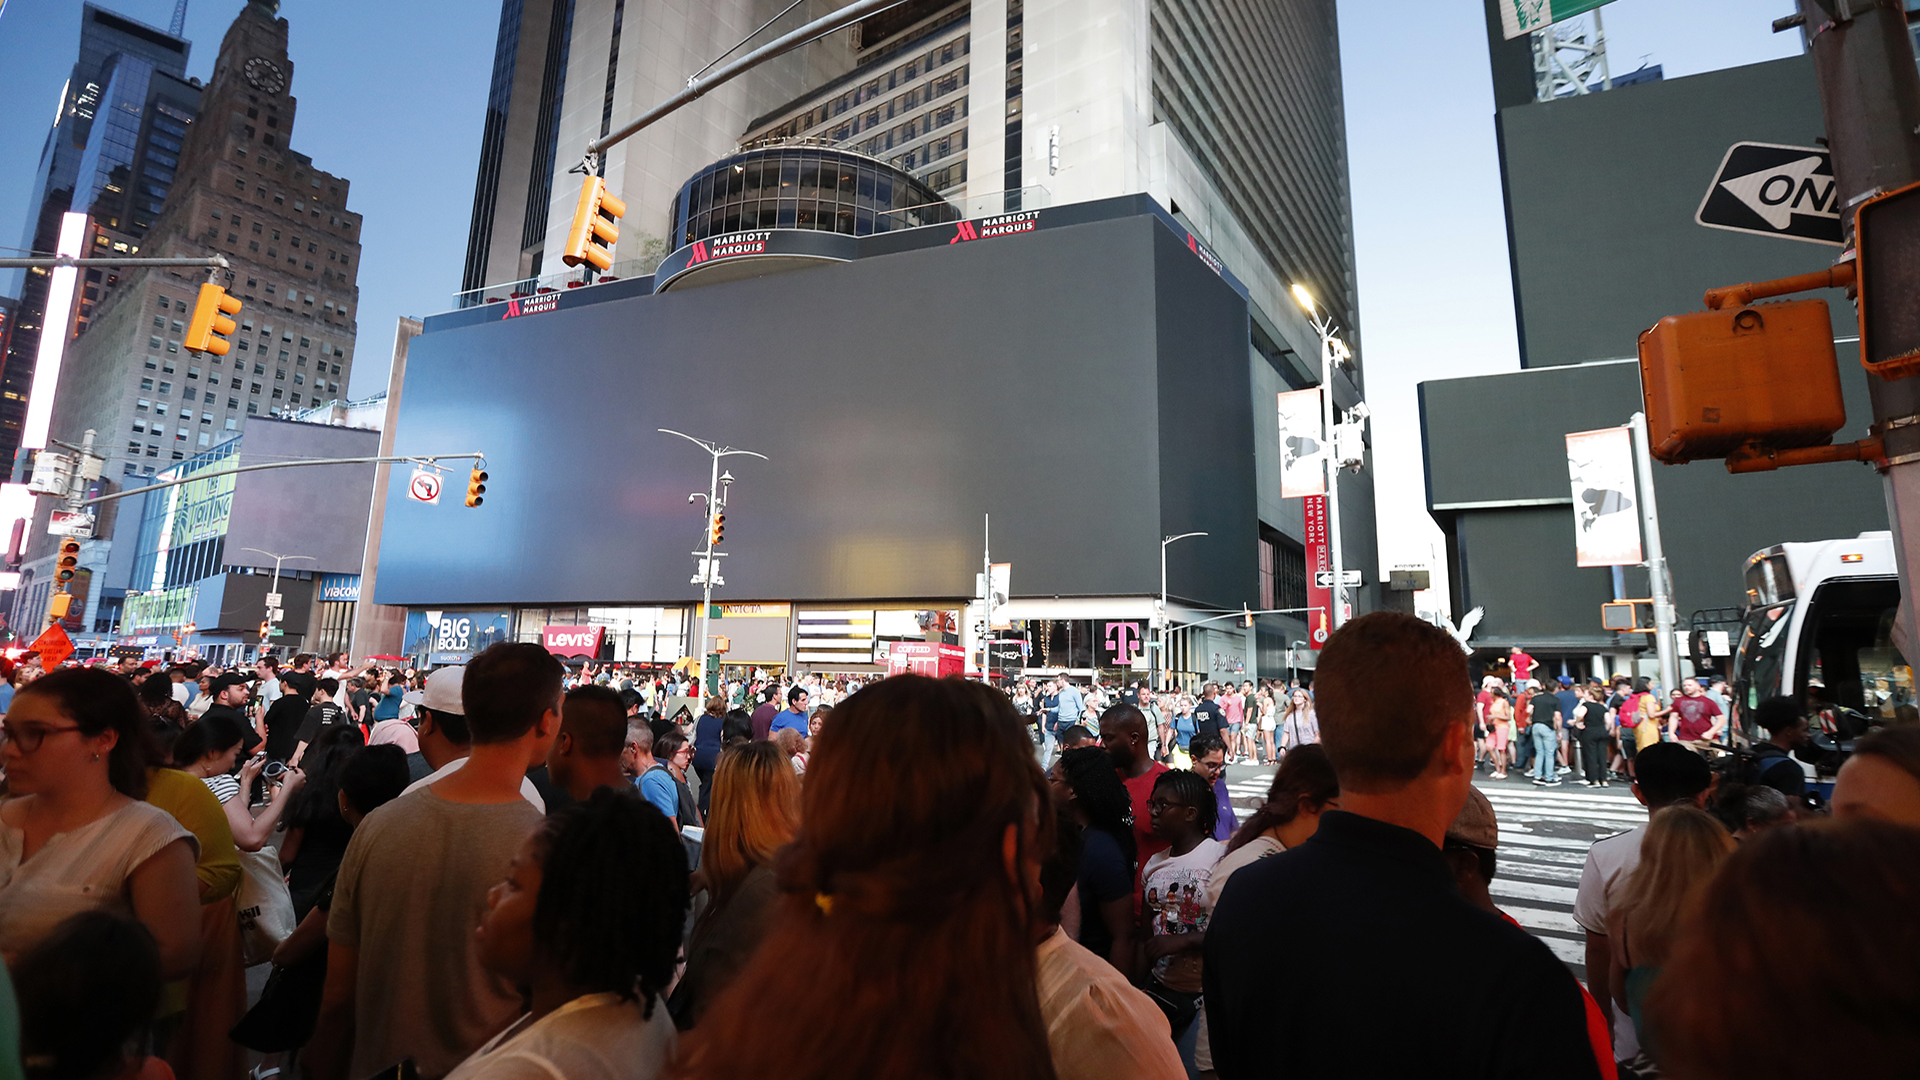 Police: Motorcycle backfiring causes panic in Times Square